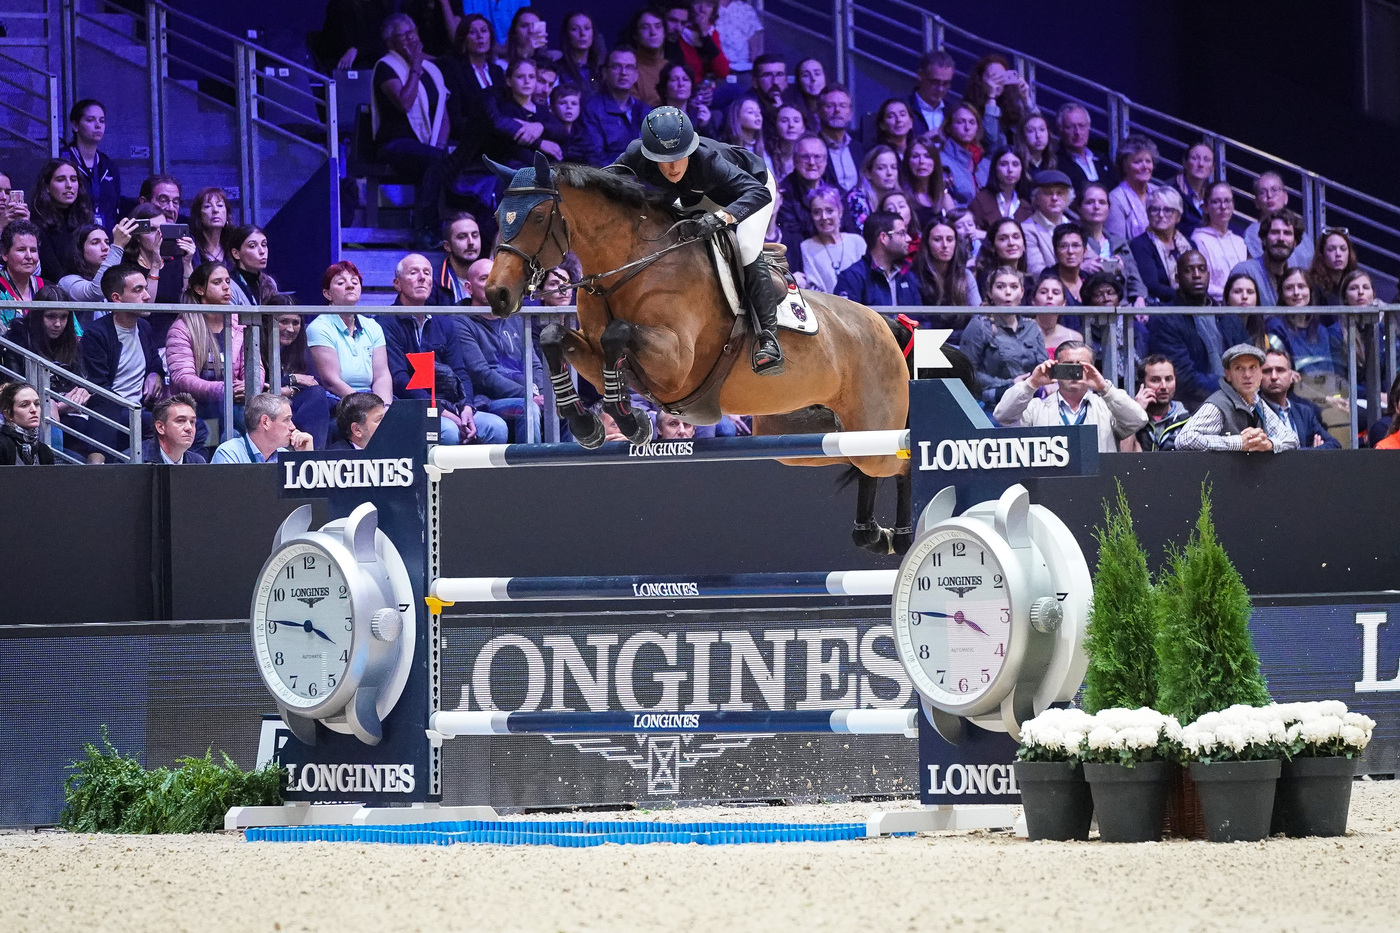 Longines Show Jumping Event: Martin Fuchs and Clooney 51 captured the Longines FEI Jumping World Cup at Longines Equita Lyon, Concours Hippique International 3